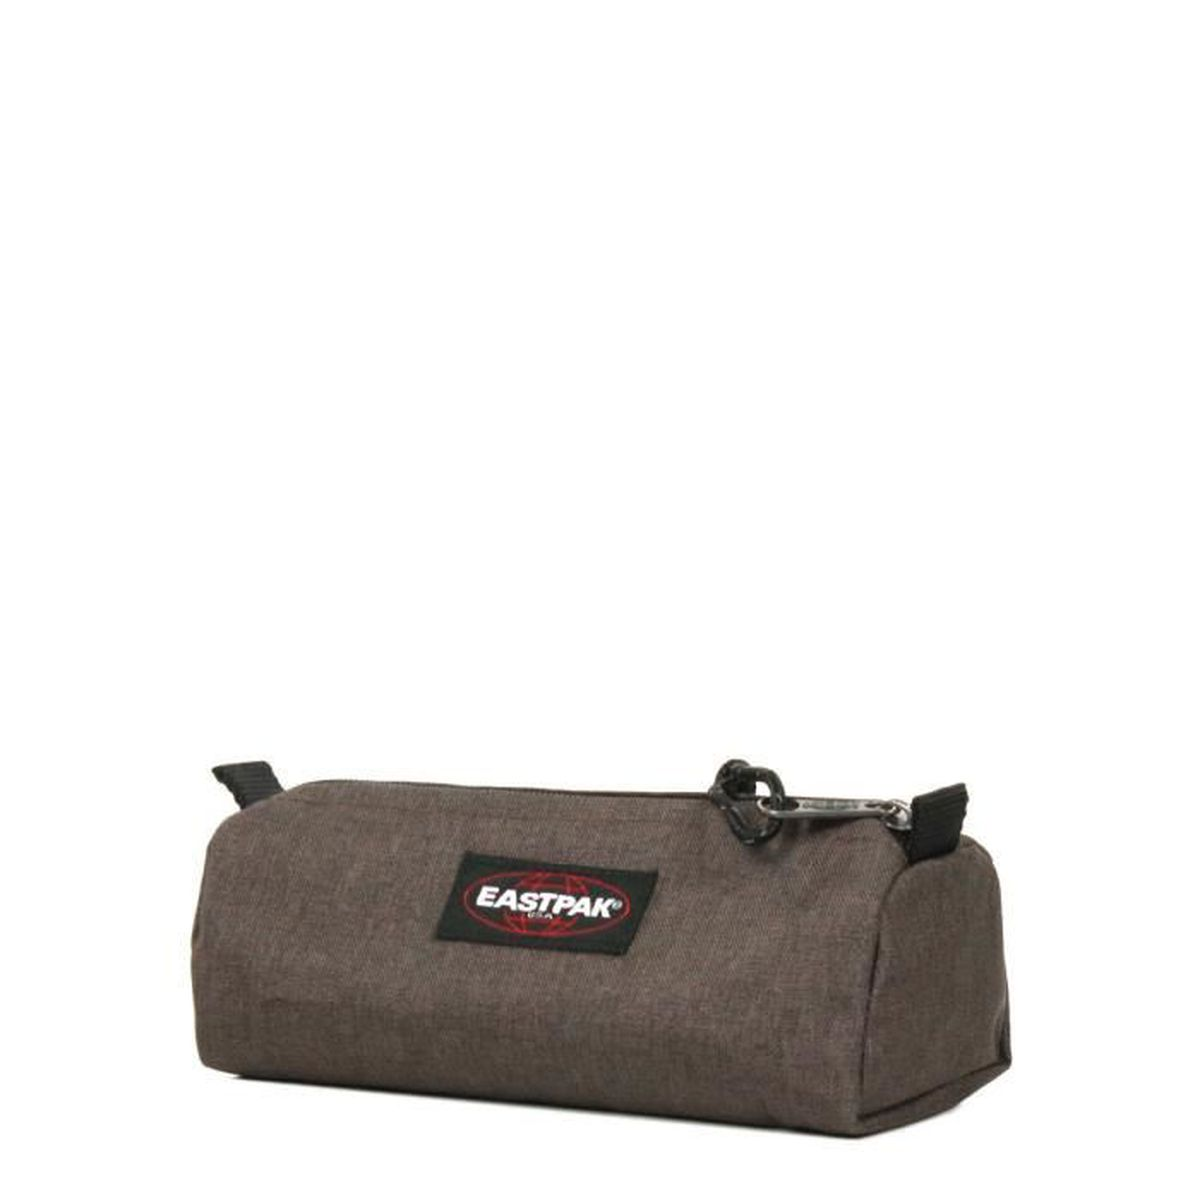 Trousse scolaire Eastpak Benchmark Crafty Brown marron IlXmh2